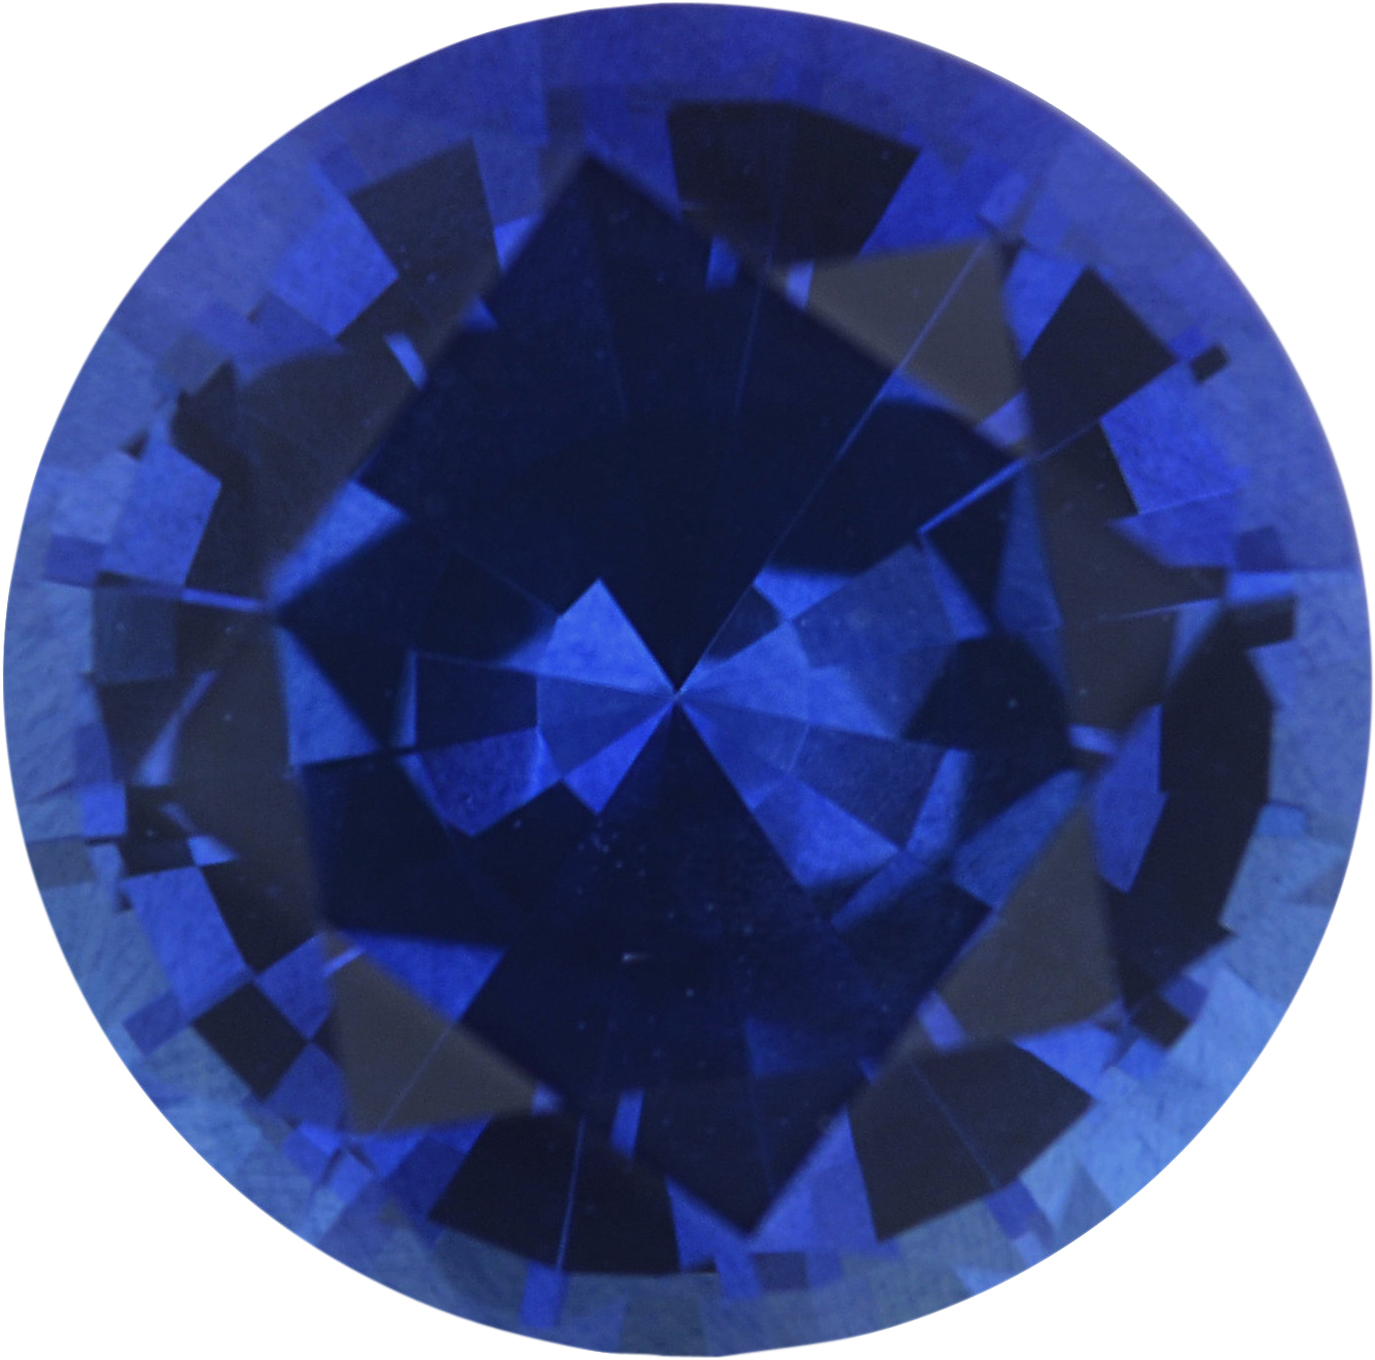 1.46 carats Blue Loose Sapphire Gemstone in Round Cut, 6.91 mm